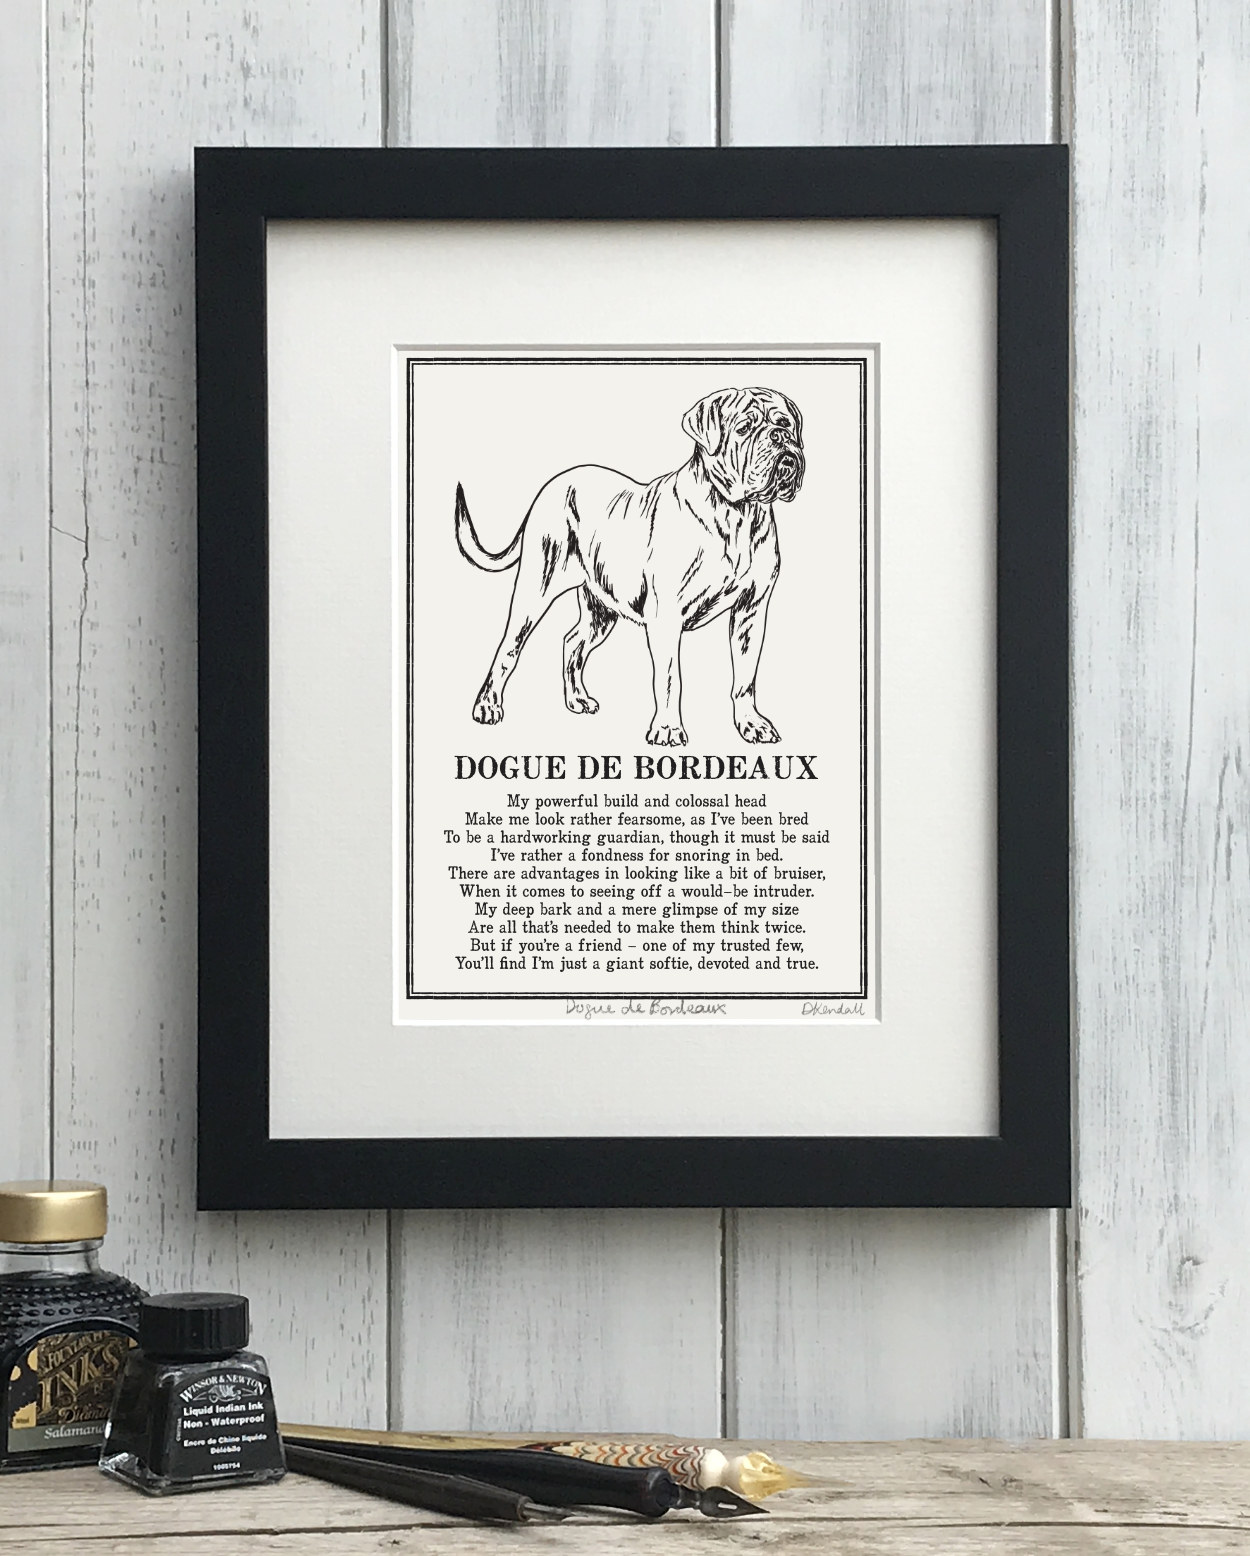 Dogue de Bordeaux French Mastiff Doggerel Illustrated Poem Art Print | The Enlightened Hound